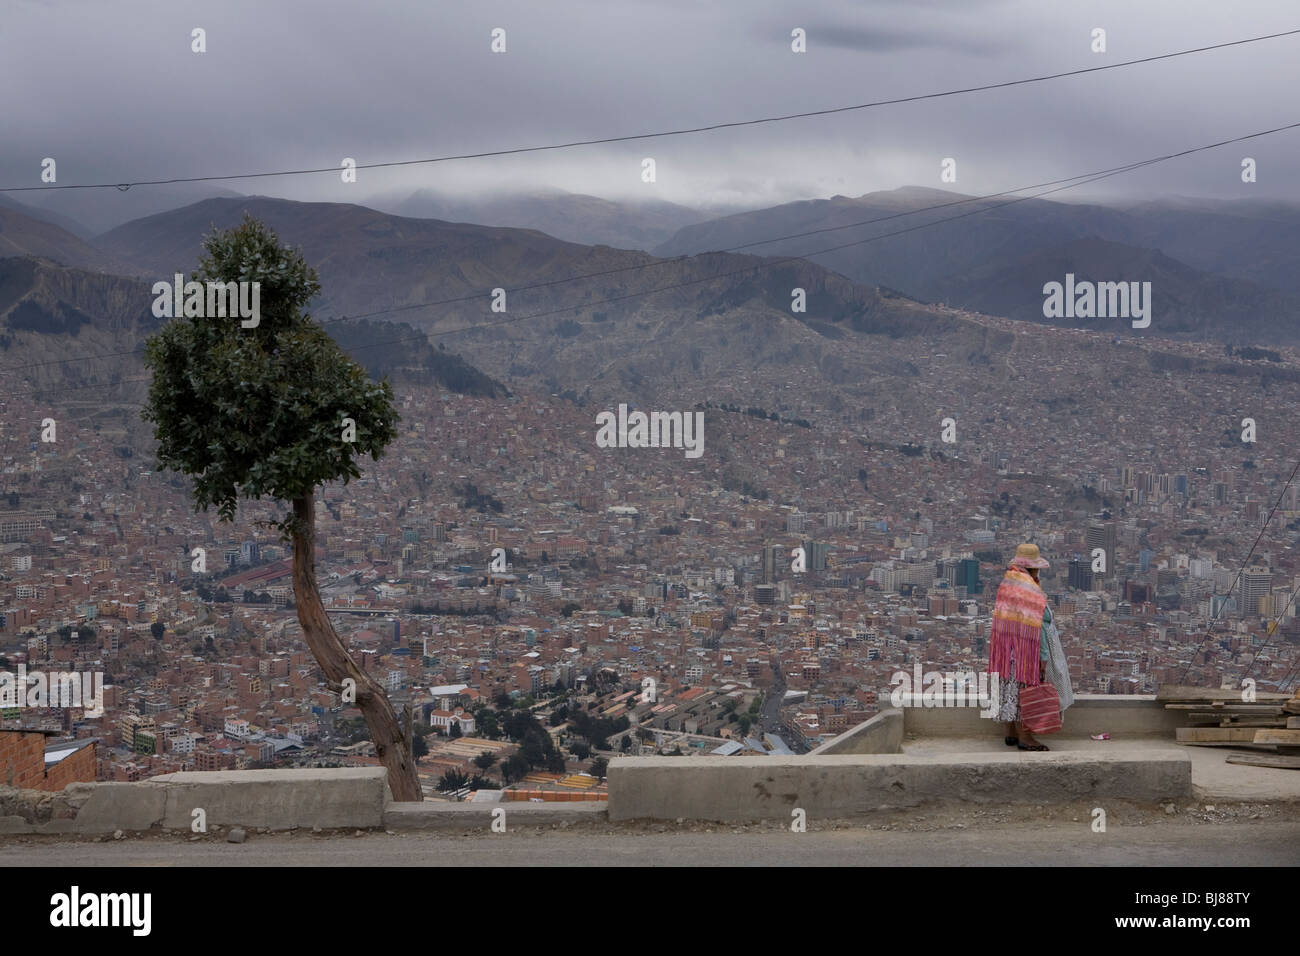 Indigenous woman looking out across la paz as seen from el alto, bolivia - Stock Image